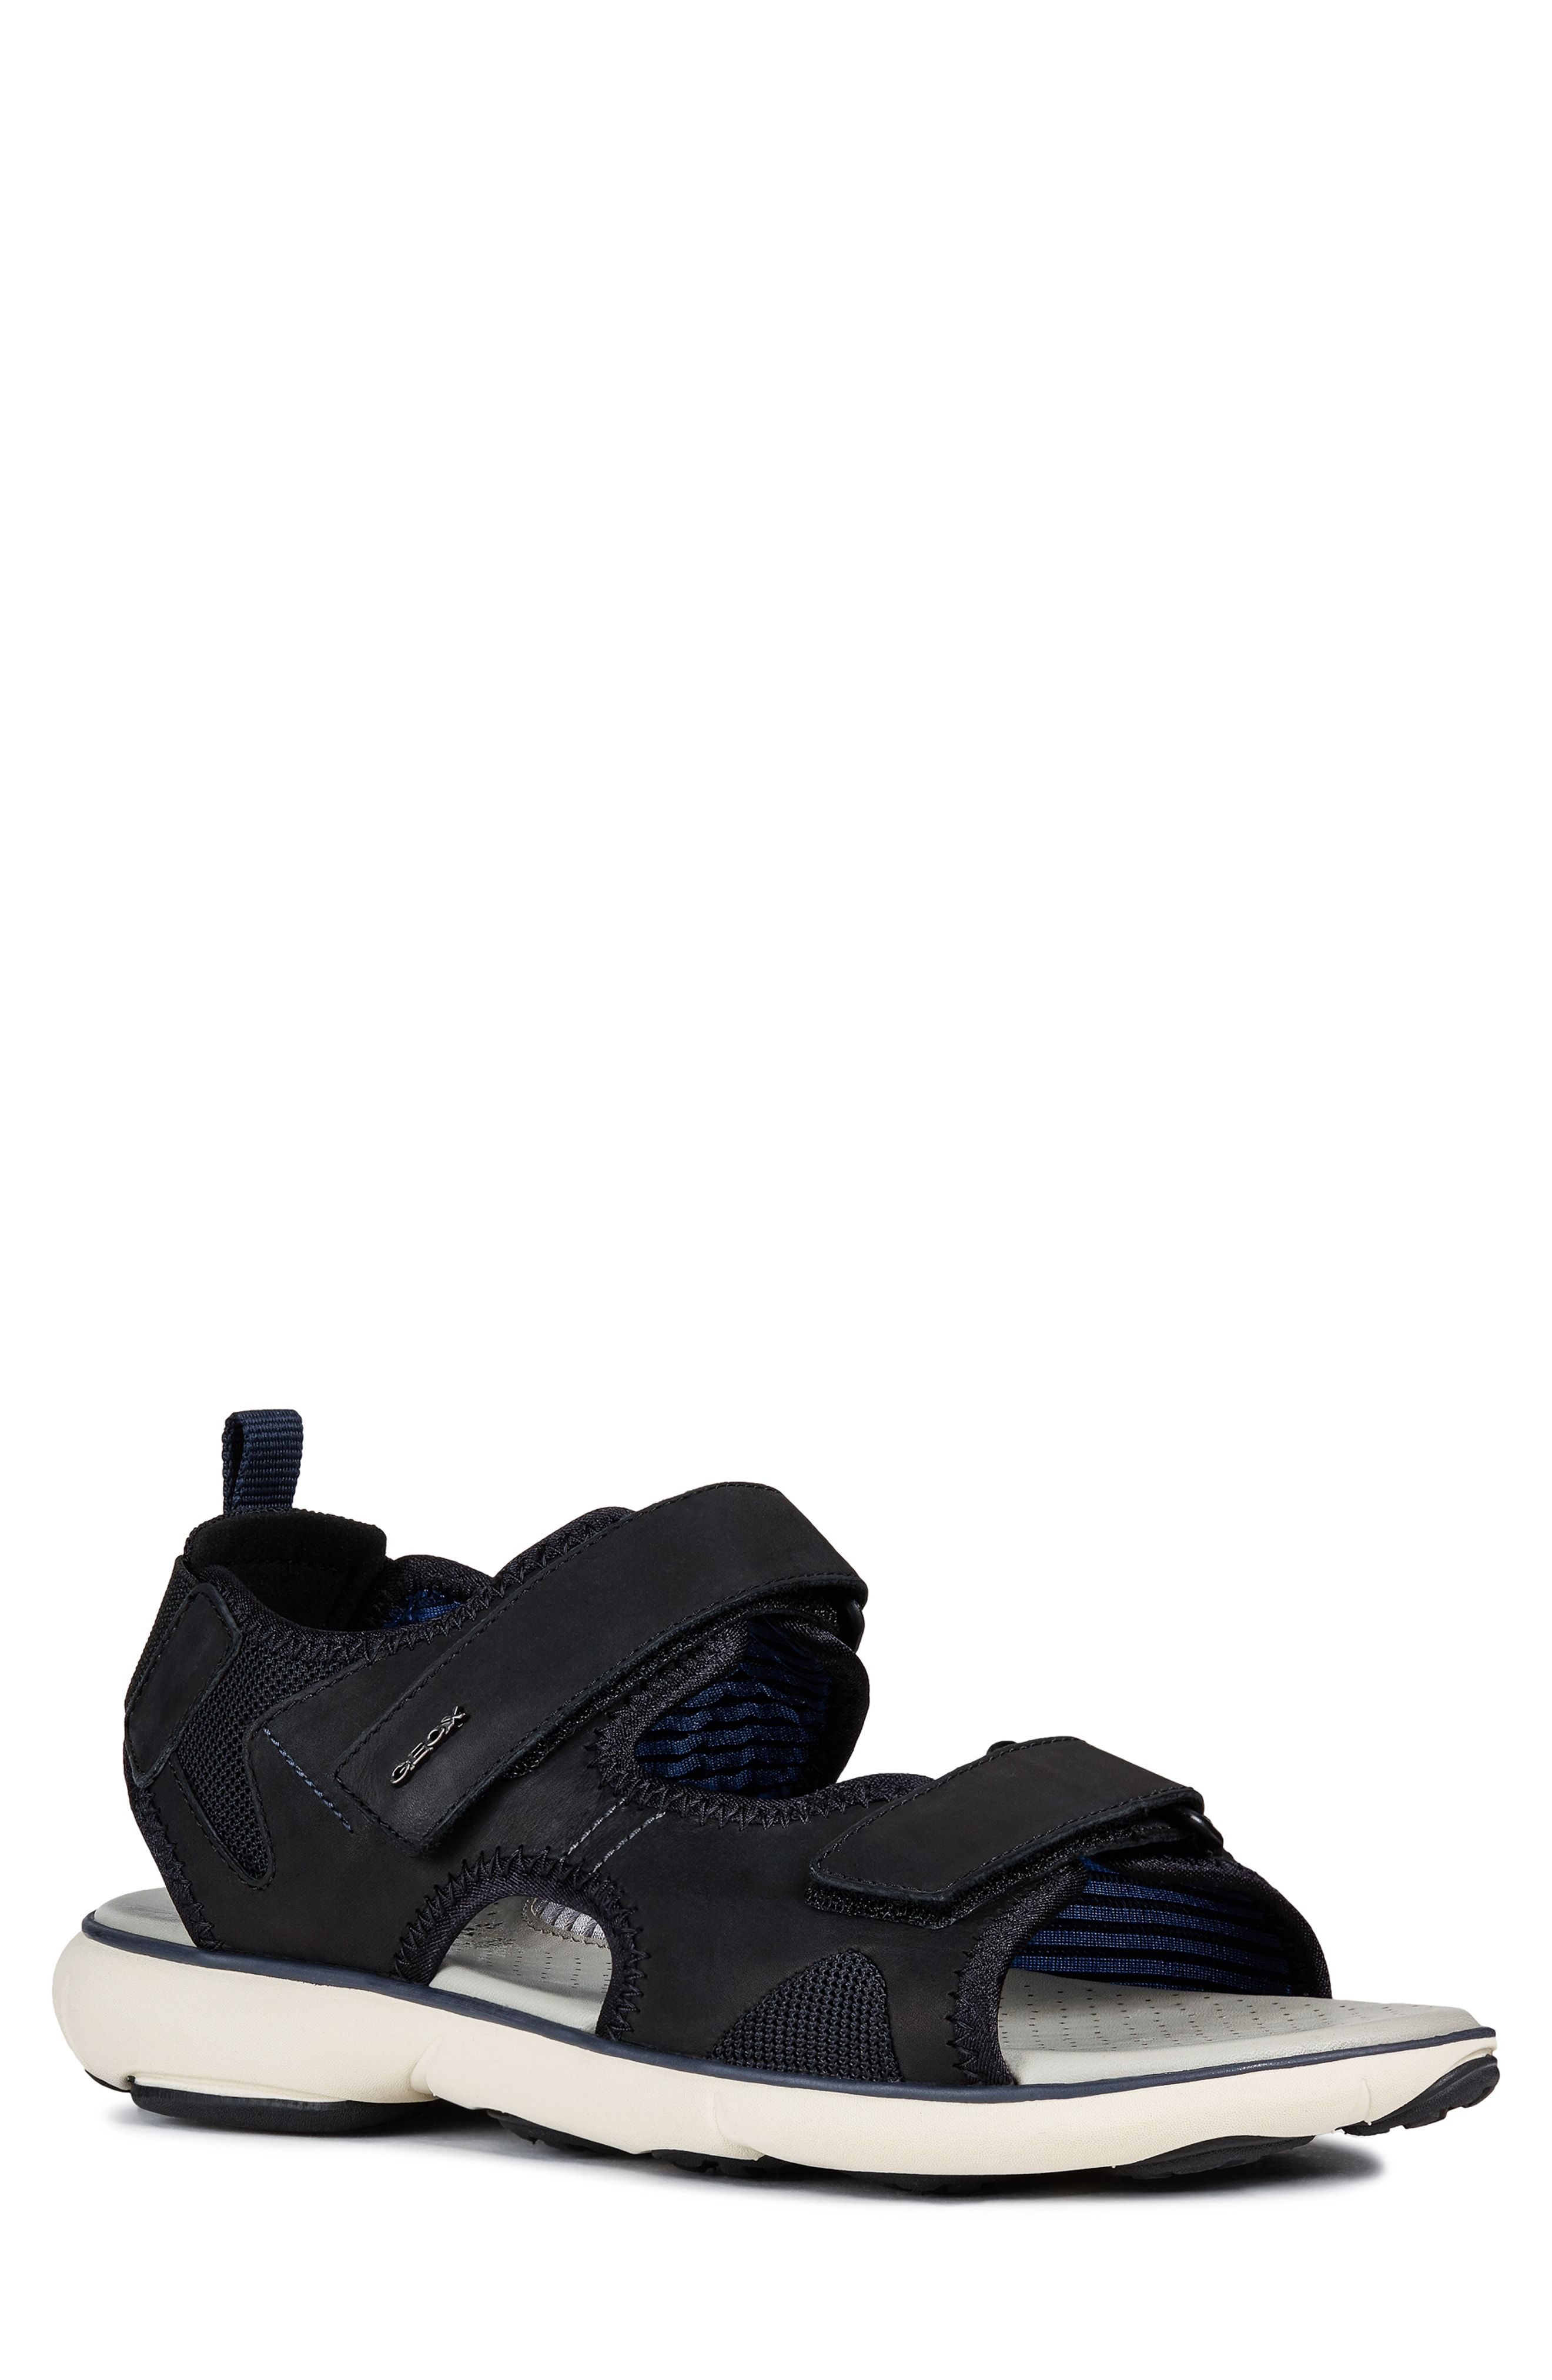 455813401ab74 GEOX NEBULA L2 SANDAL. #geox #shoes | Geox in 2019 | Sandals, Men, Shoes